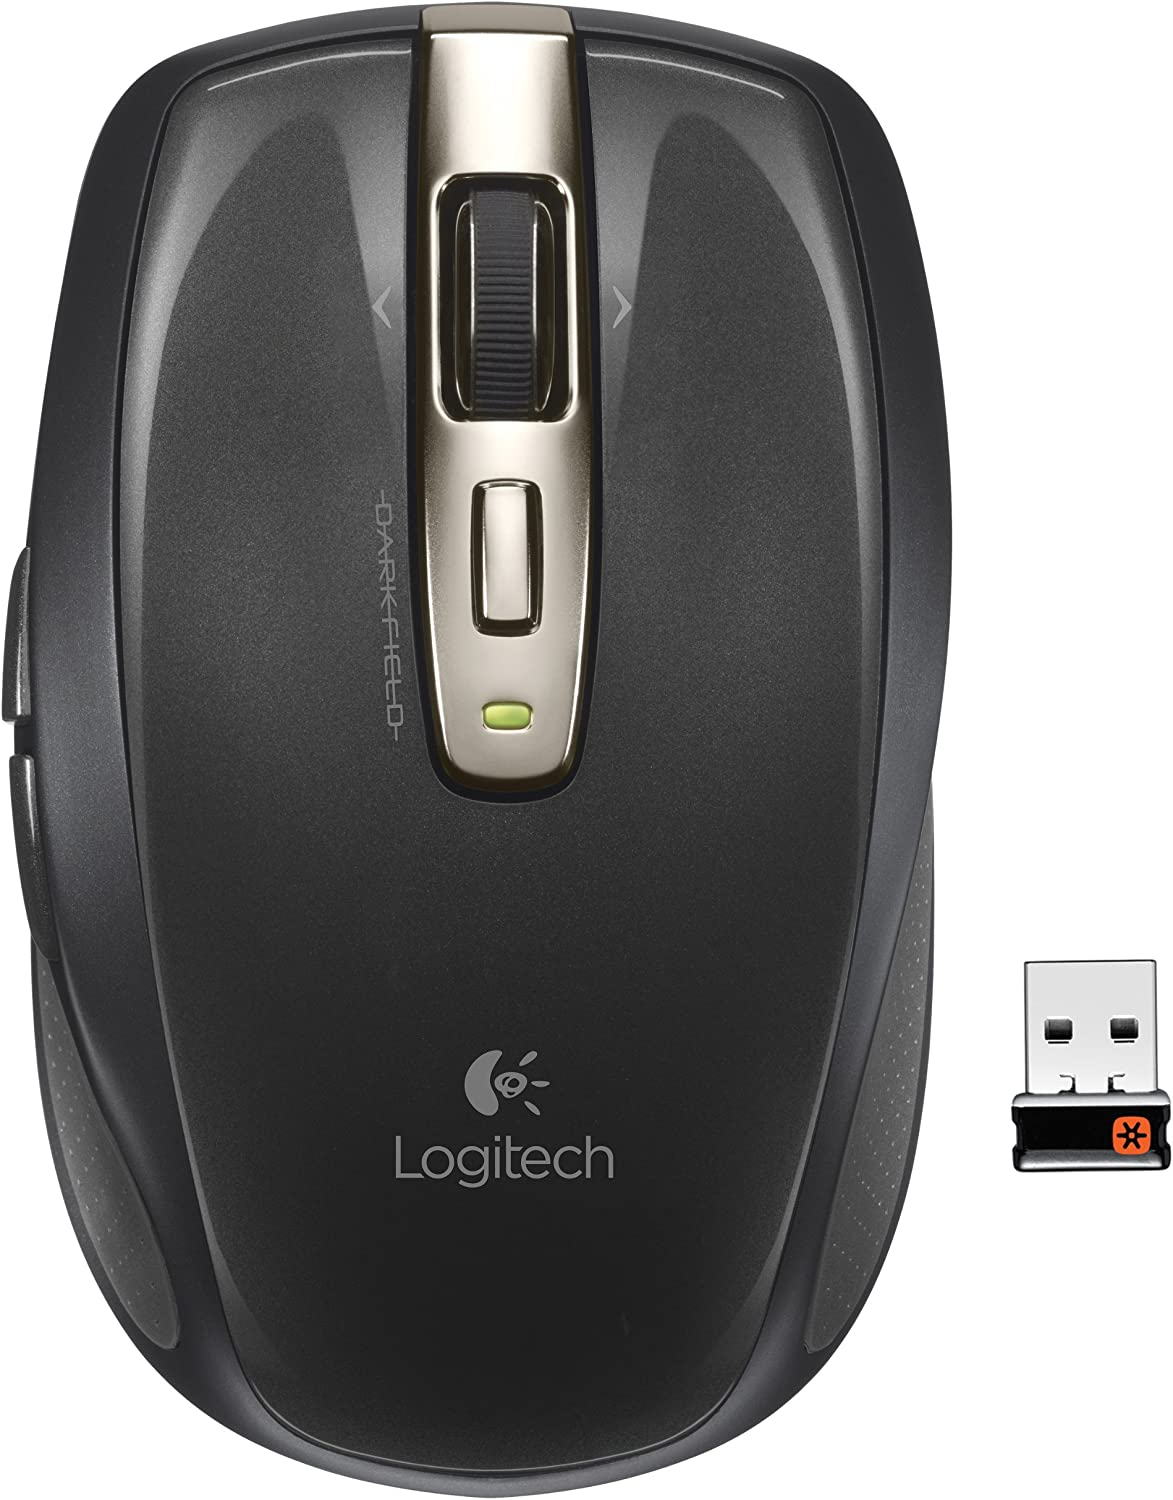 Logitech Wireless Anywhere Mouse MX for PC and Mac, black